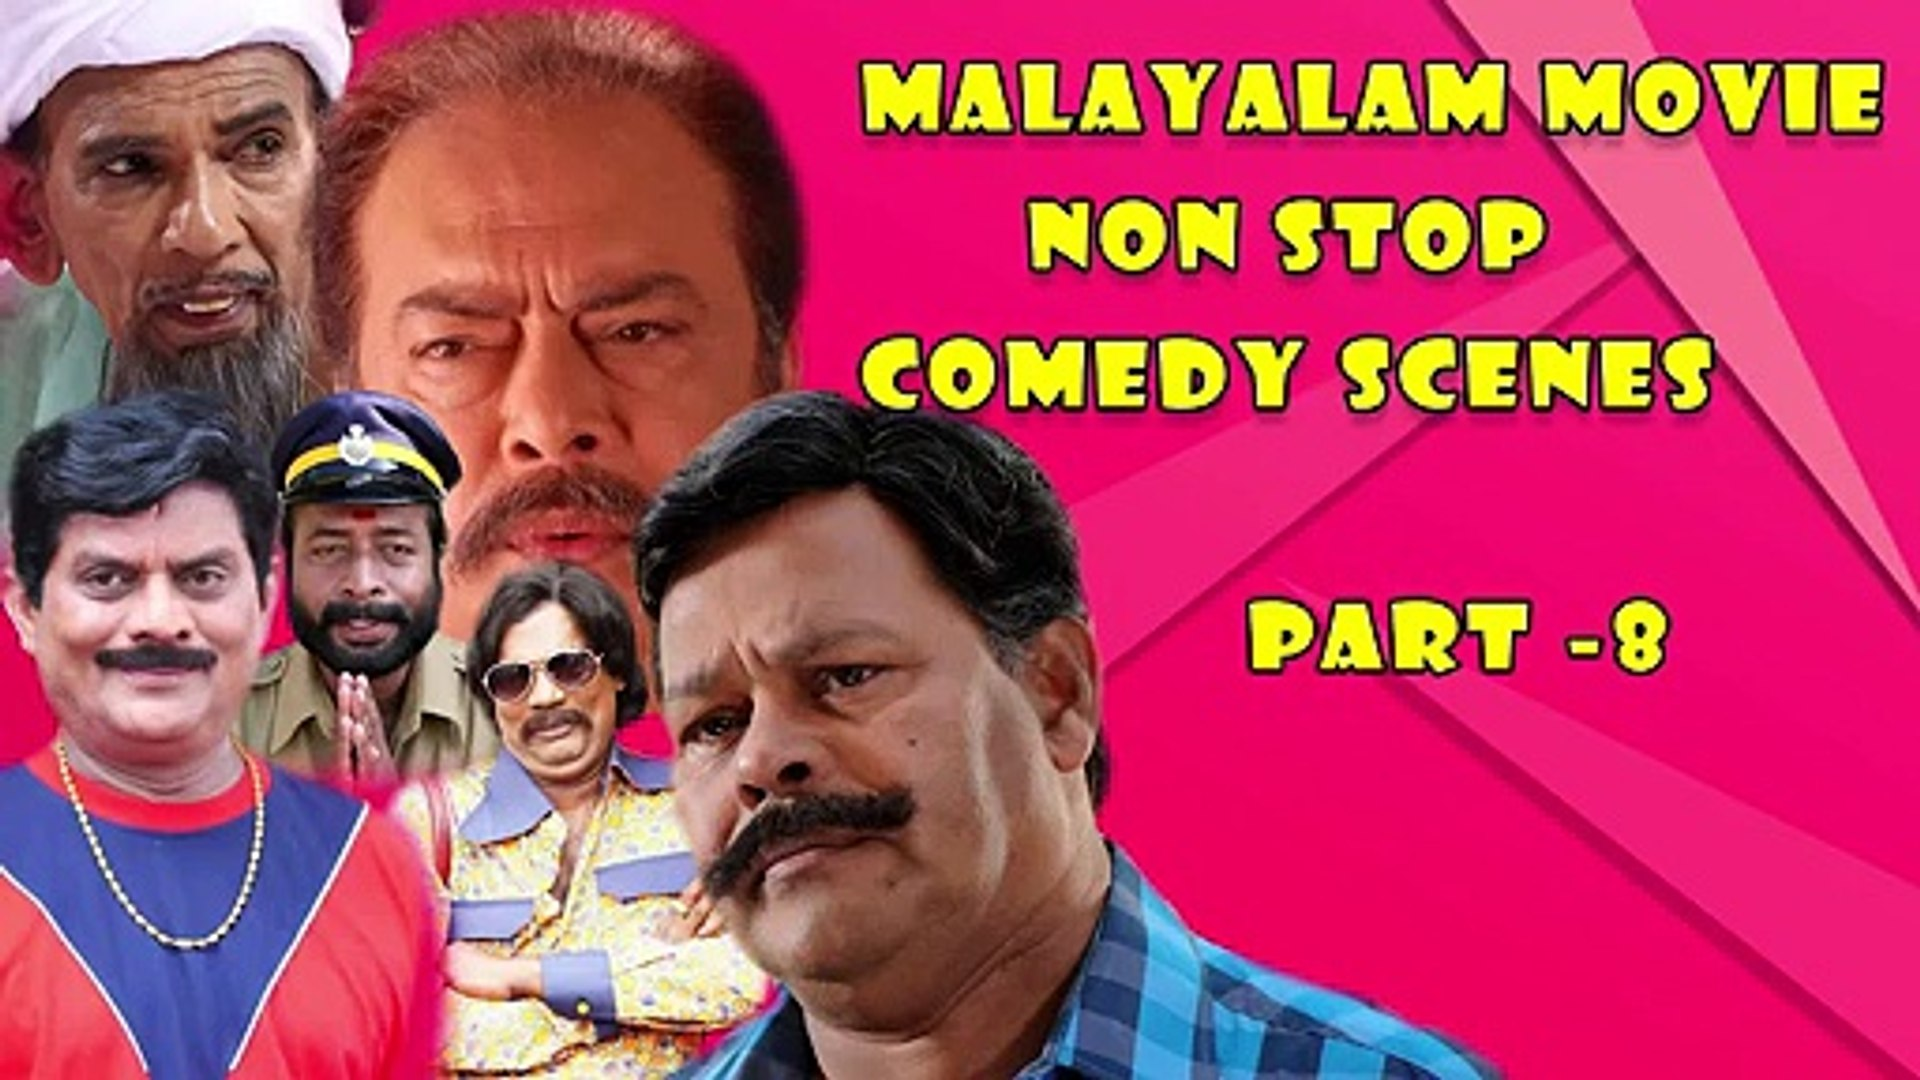 Malayalam Movie Non Stop Comedy Scenes 8 | Malayalam Comedy Scenes | Malayalam Movie Comed